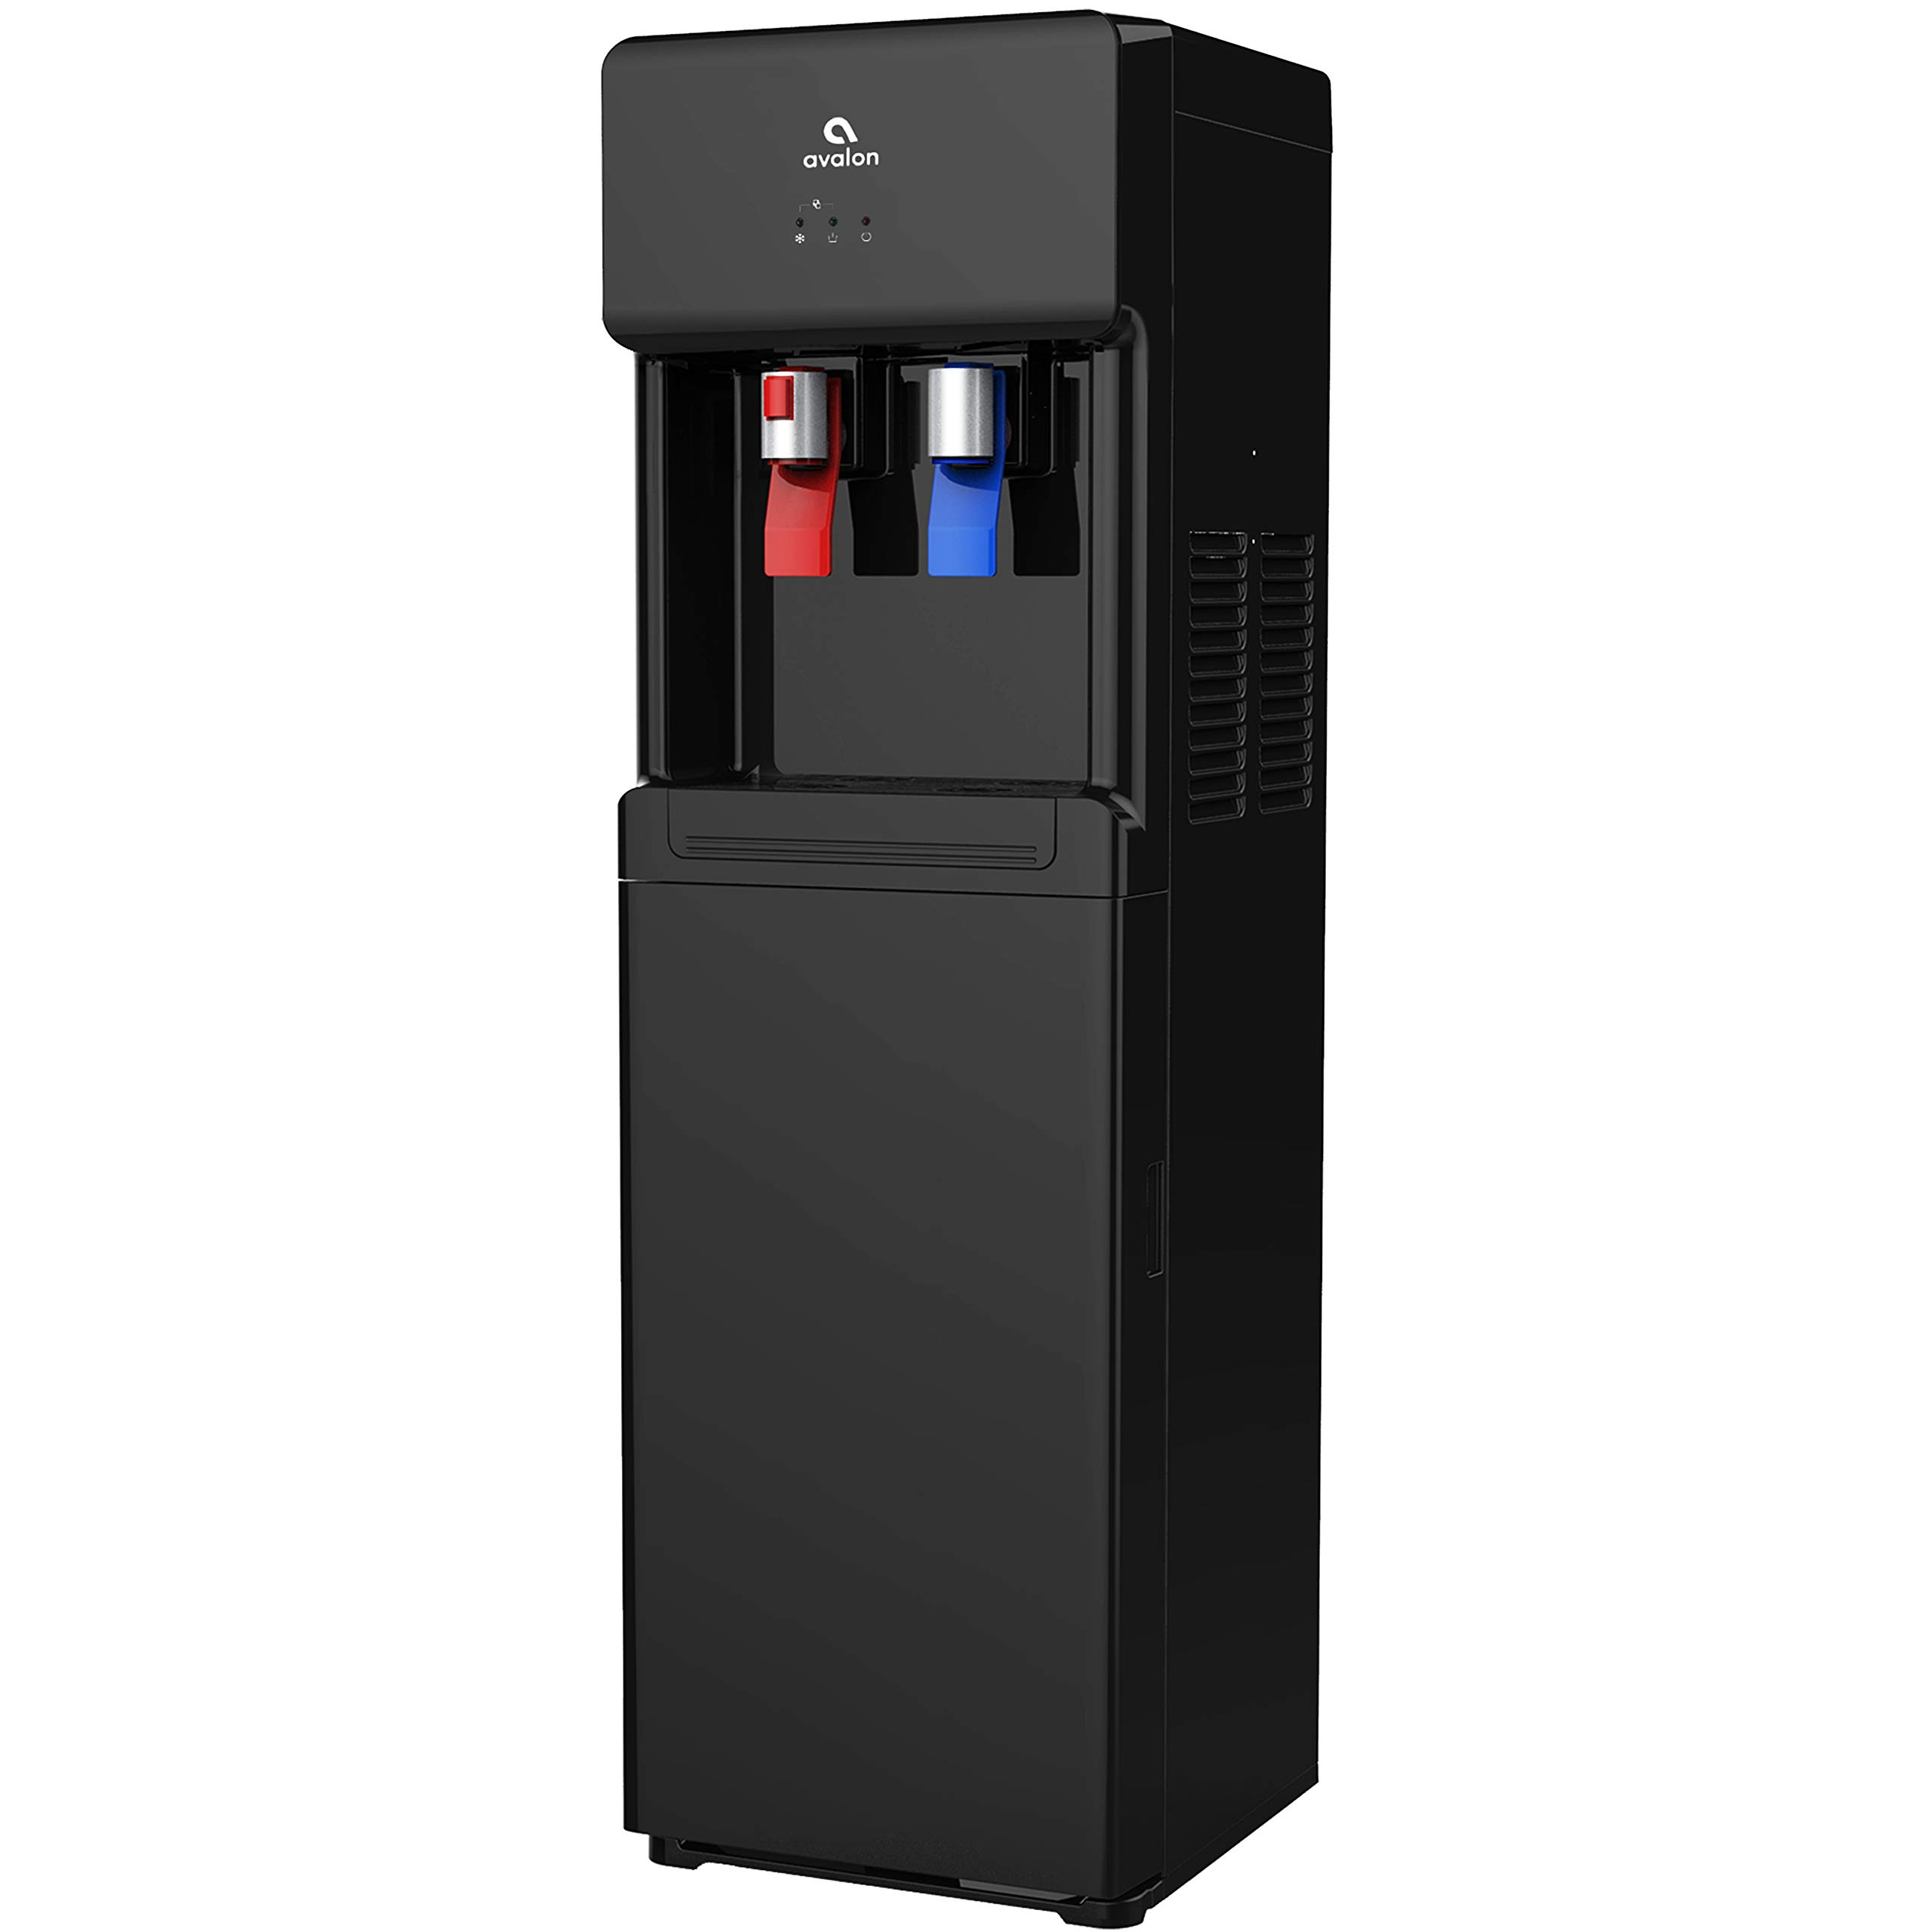 Avalon A6 Bottom Loading Water Cooler Dispenser - Hot & Cold Water, Child Safety Lock, Innovative Slim Design (Black)